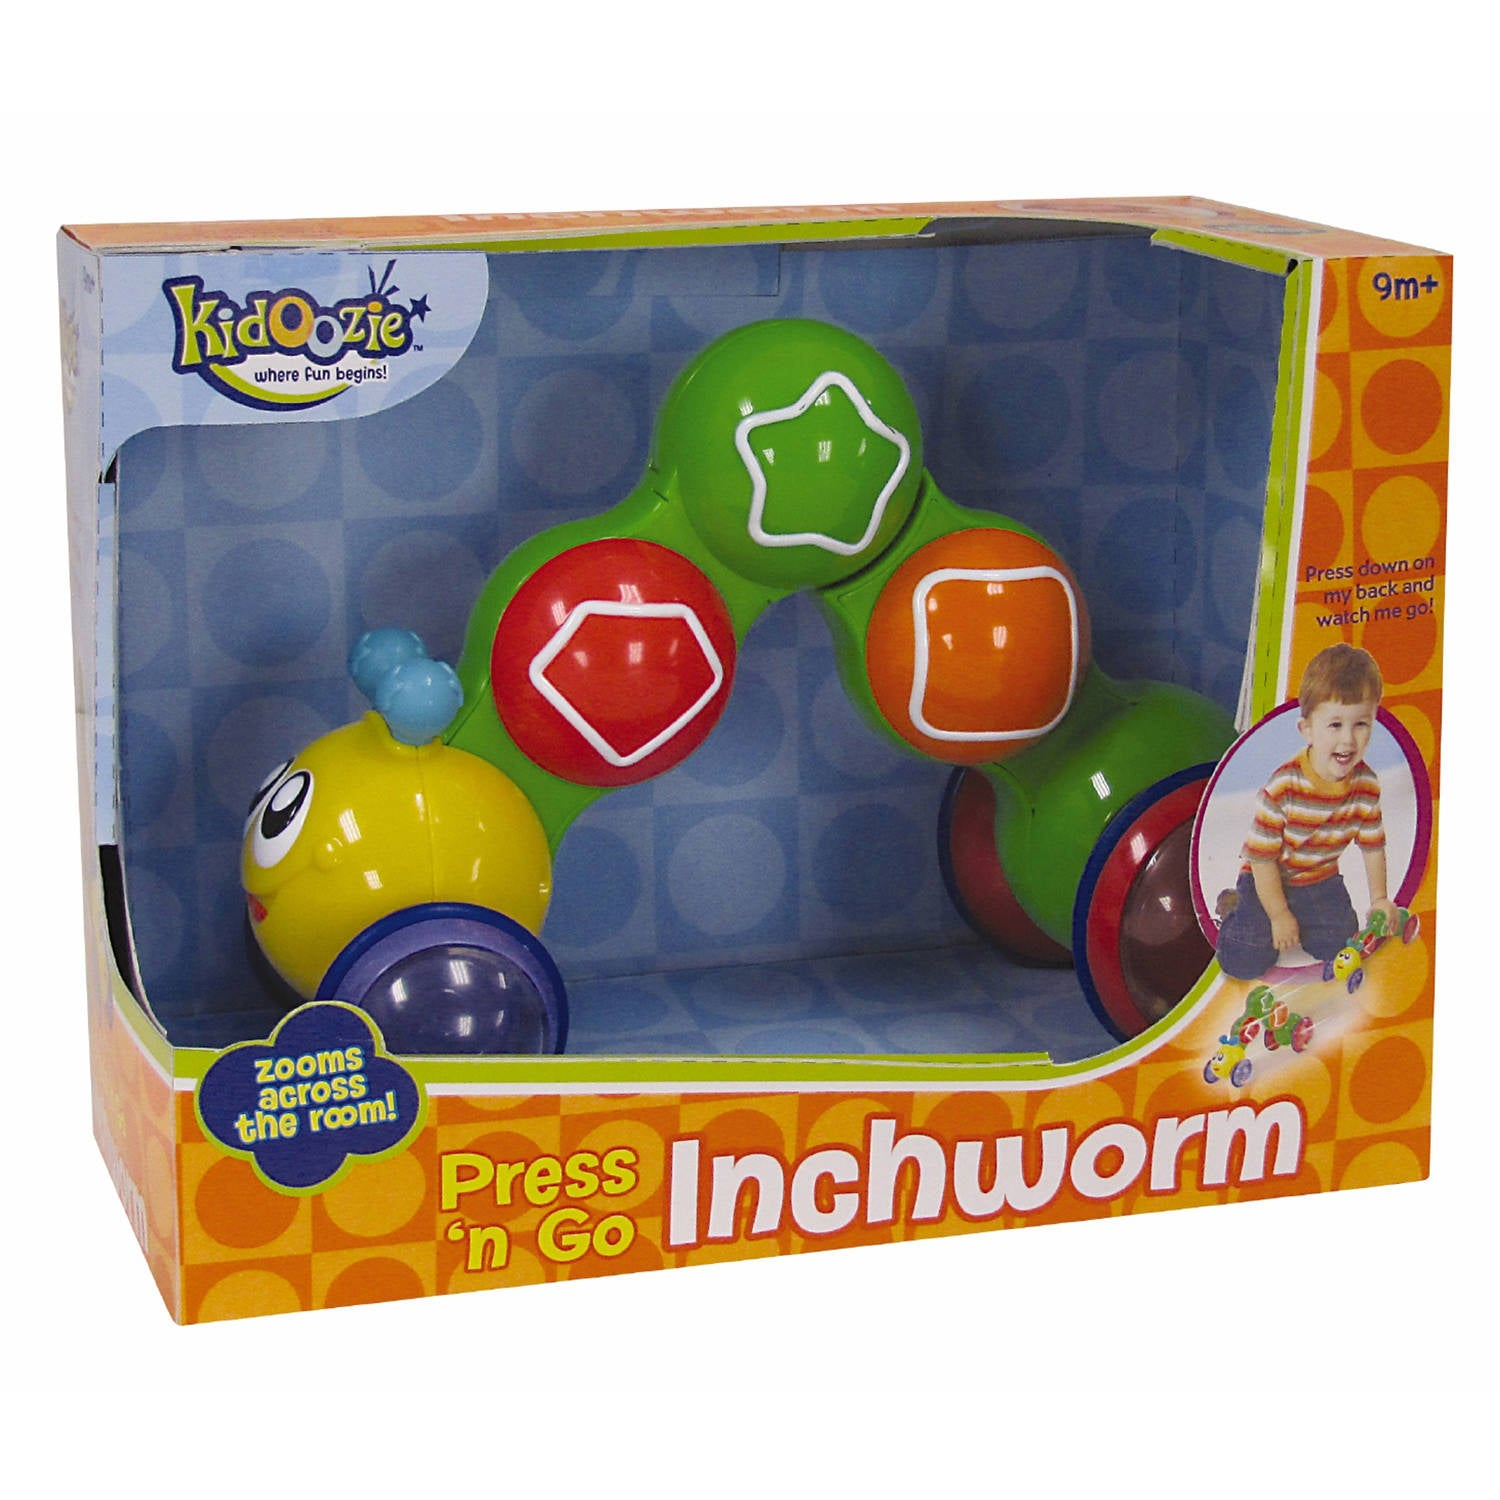 Press and Go Inch Worm